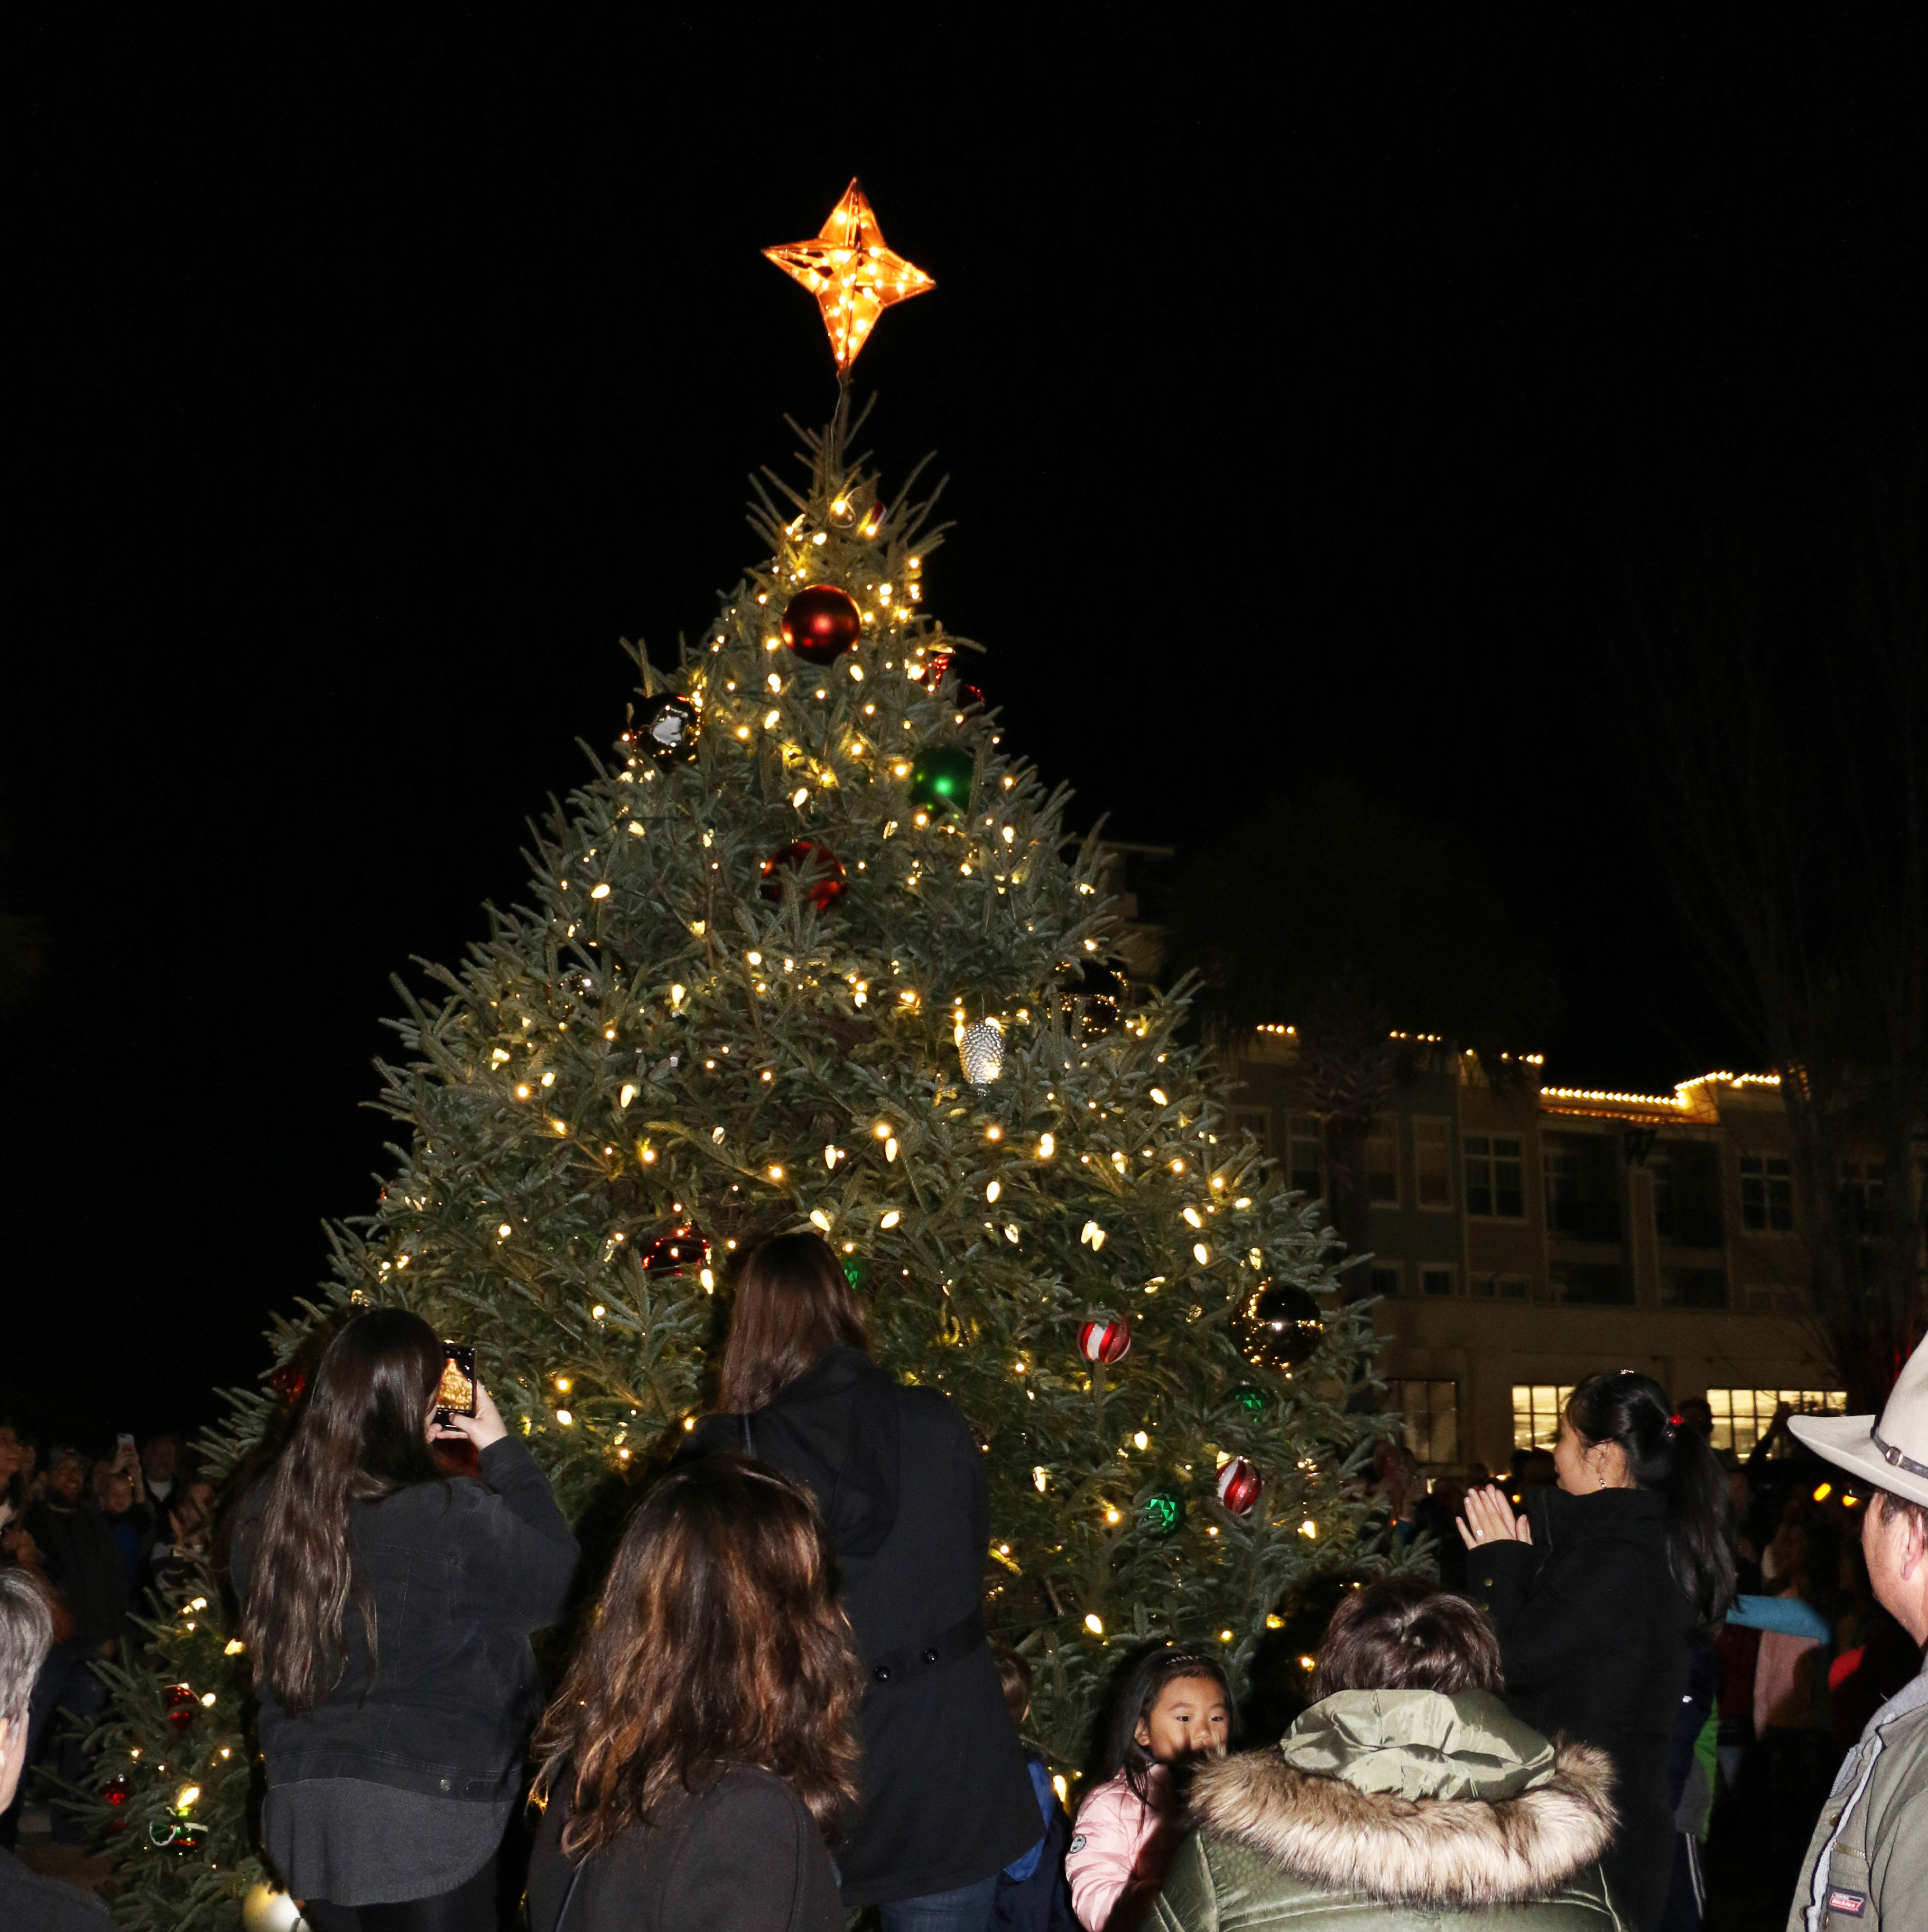 Revelers take pictures with the newly lit tree.